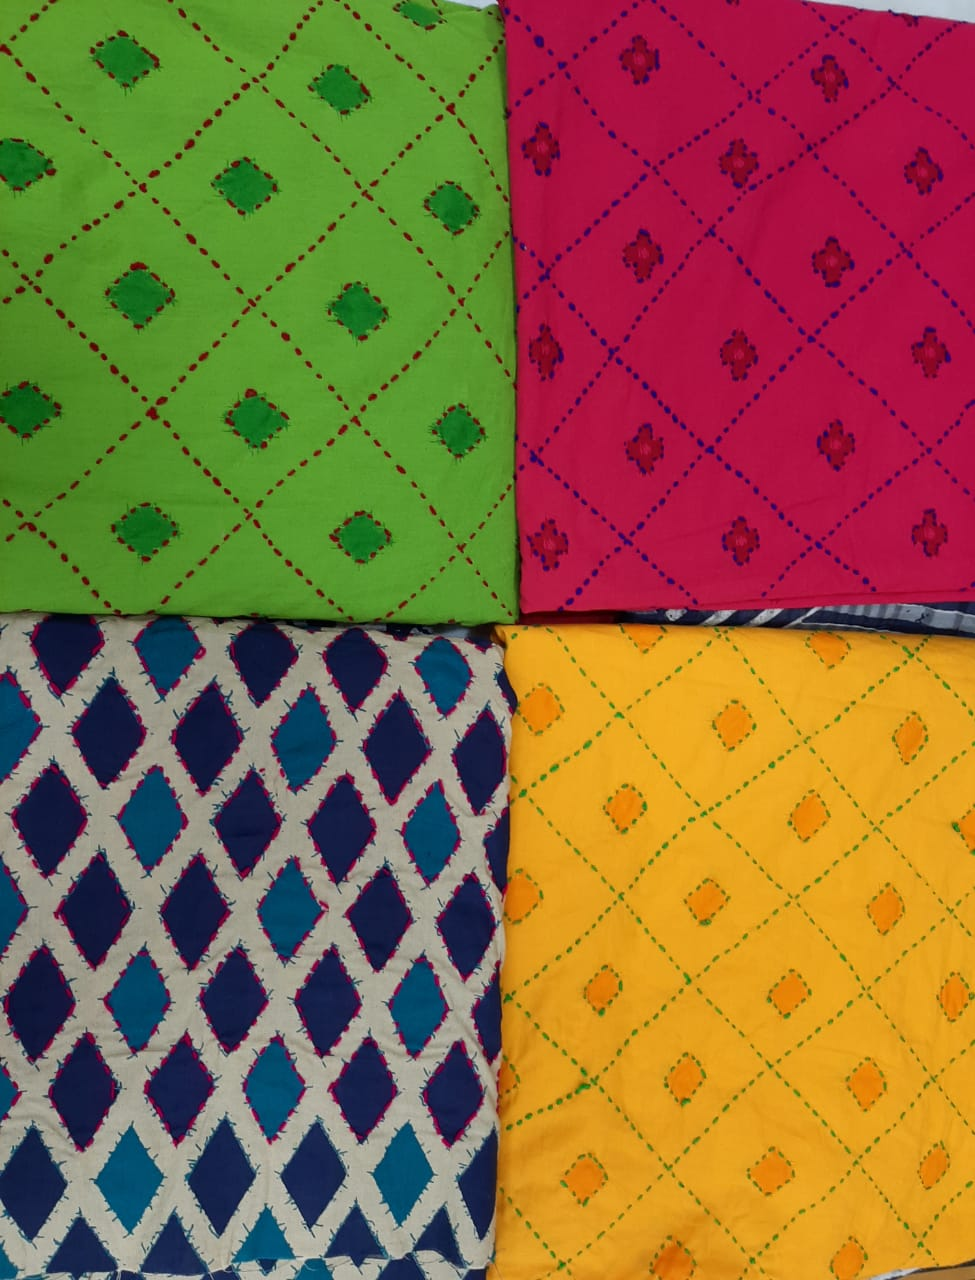 cotton fabrics, kantha work, indigo, moroccon prints, green, red, yellow, Baroda prints,